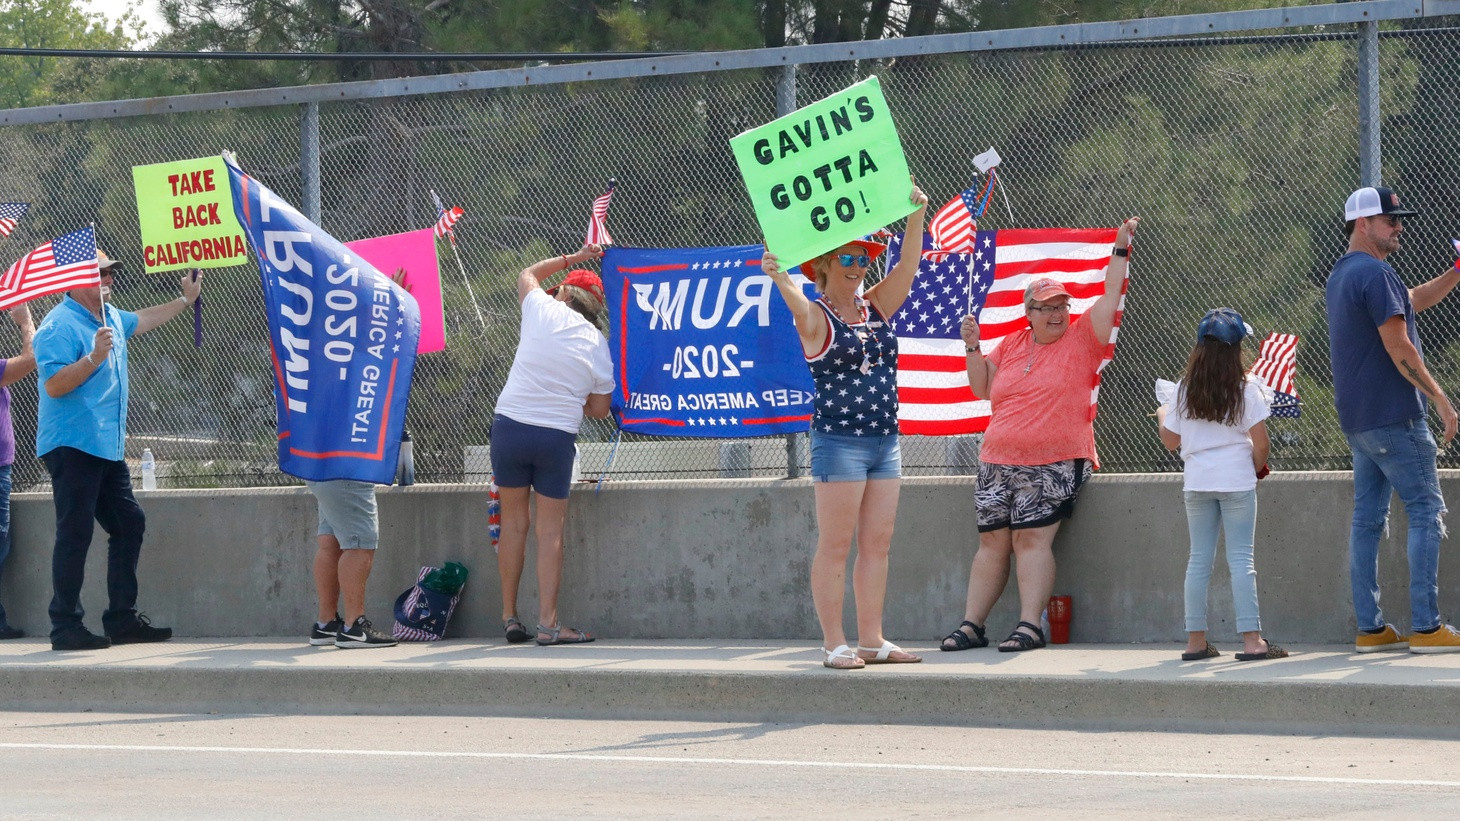 More than a dozen people stood on the Interstate 5 overpass at Hartnell Avenue in Redding as part of the Statewide Overpass Recall Newsom Rally on Saturday, Aug. 29, 2020. Pro-Trump banners also were on display at the rally that promoted a recall of Gov. Gavin Newsom.